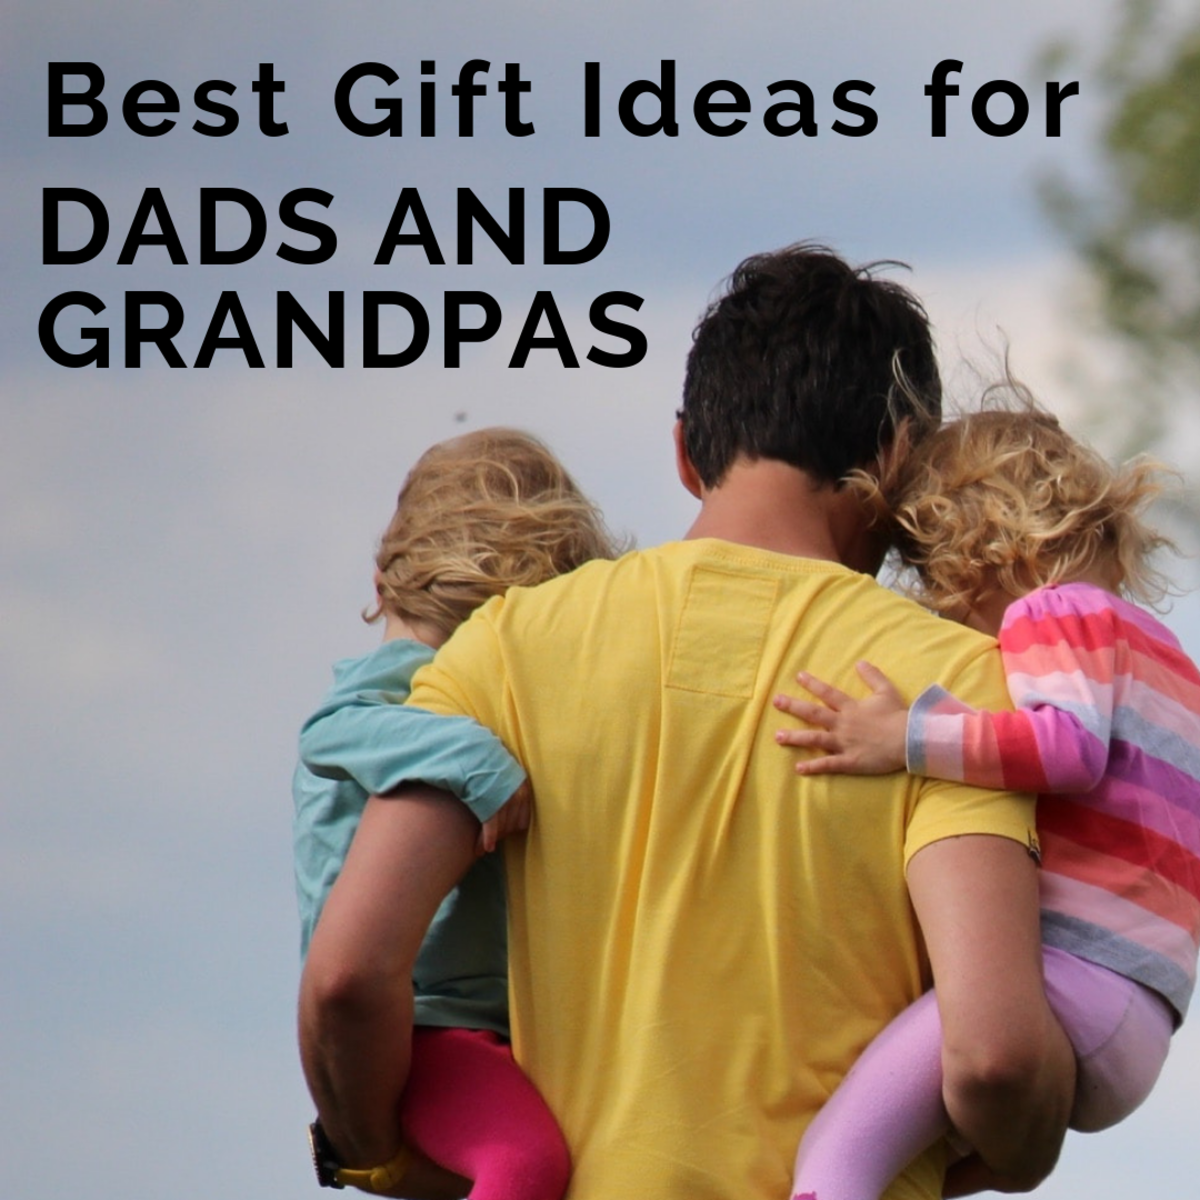 12 Great Father's Day Gift Ideas for Retired Dads and Grandfathers